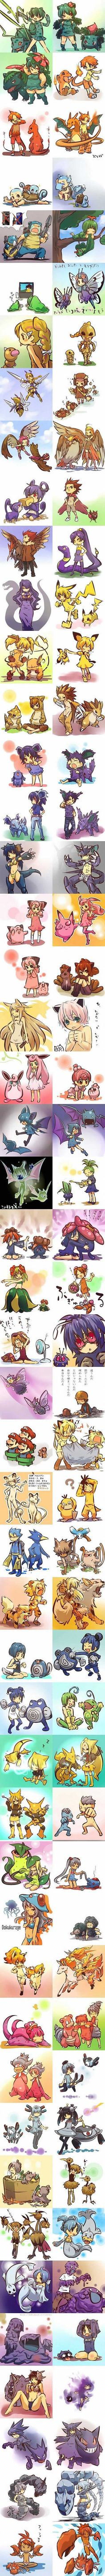 best pokemon images on pinterest drawings videogames and